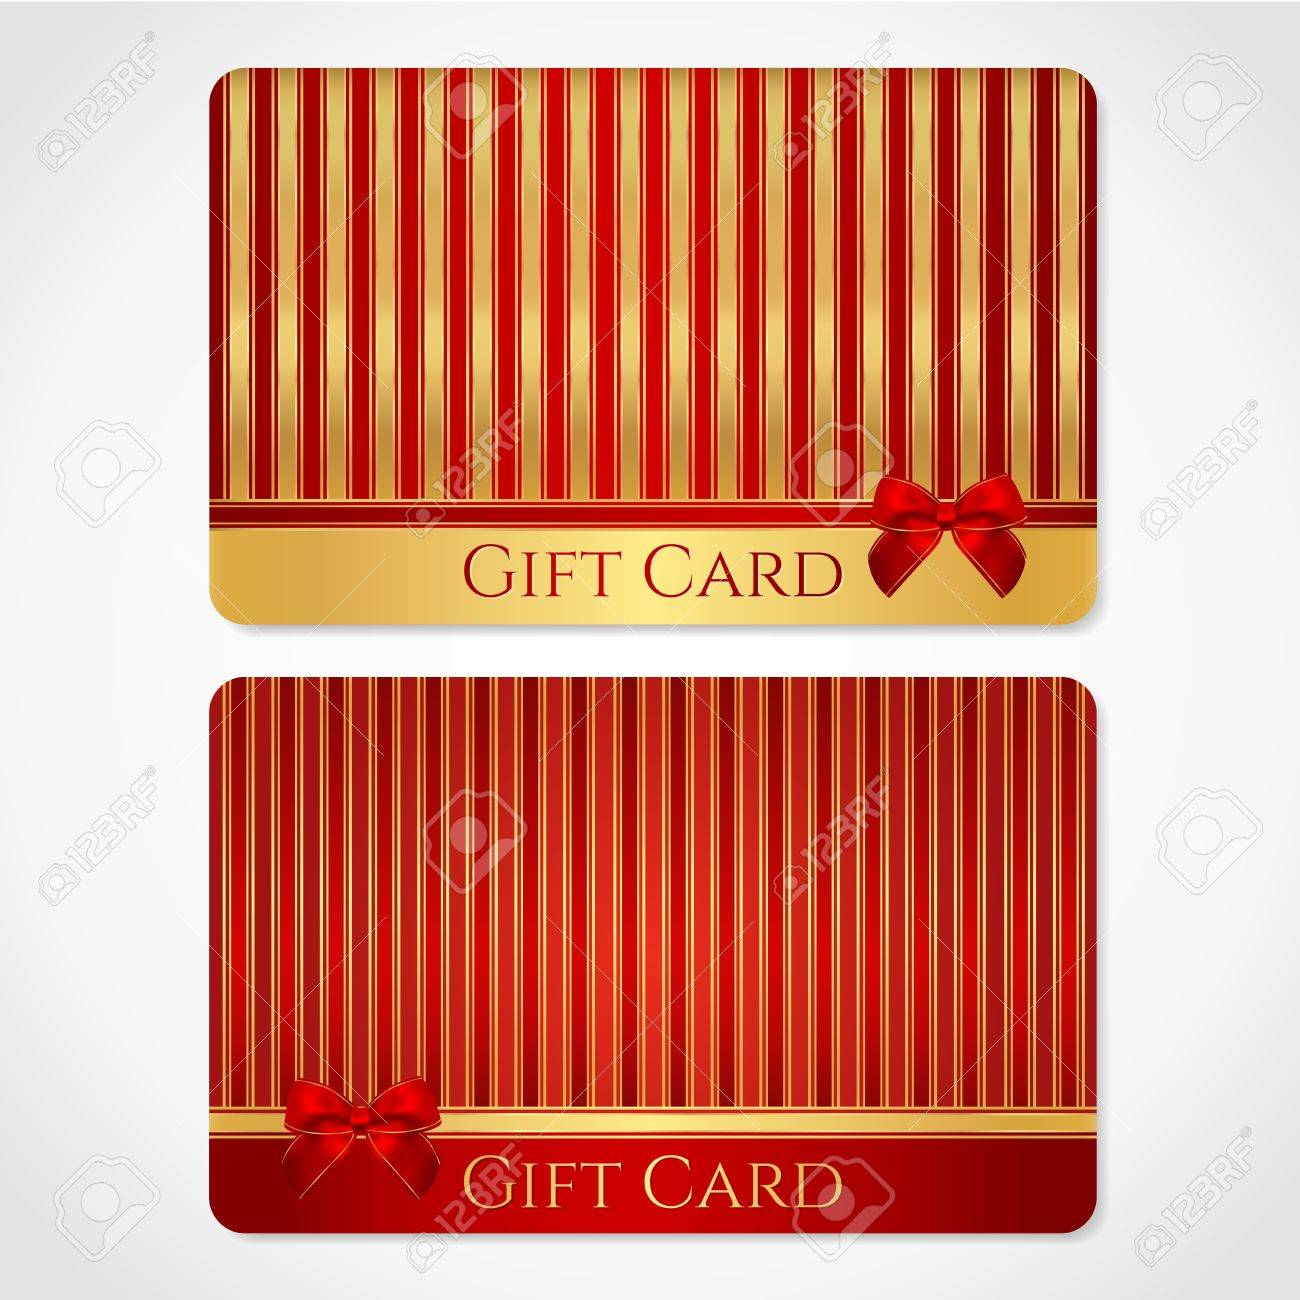 Design of discount card - Red And Gold Gift Card Discount Card With Stripy Pattern And Red Bow Ribbons This Background